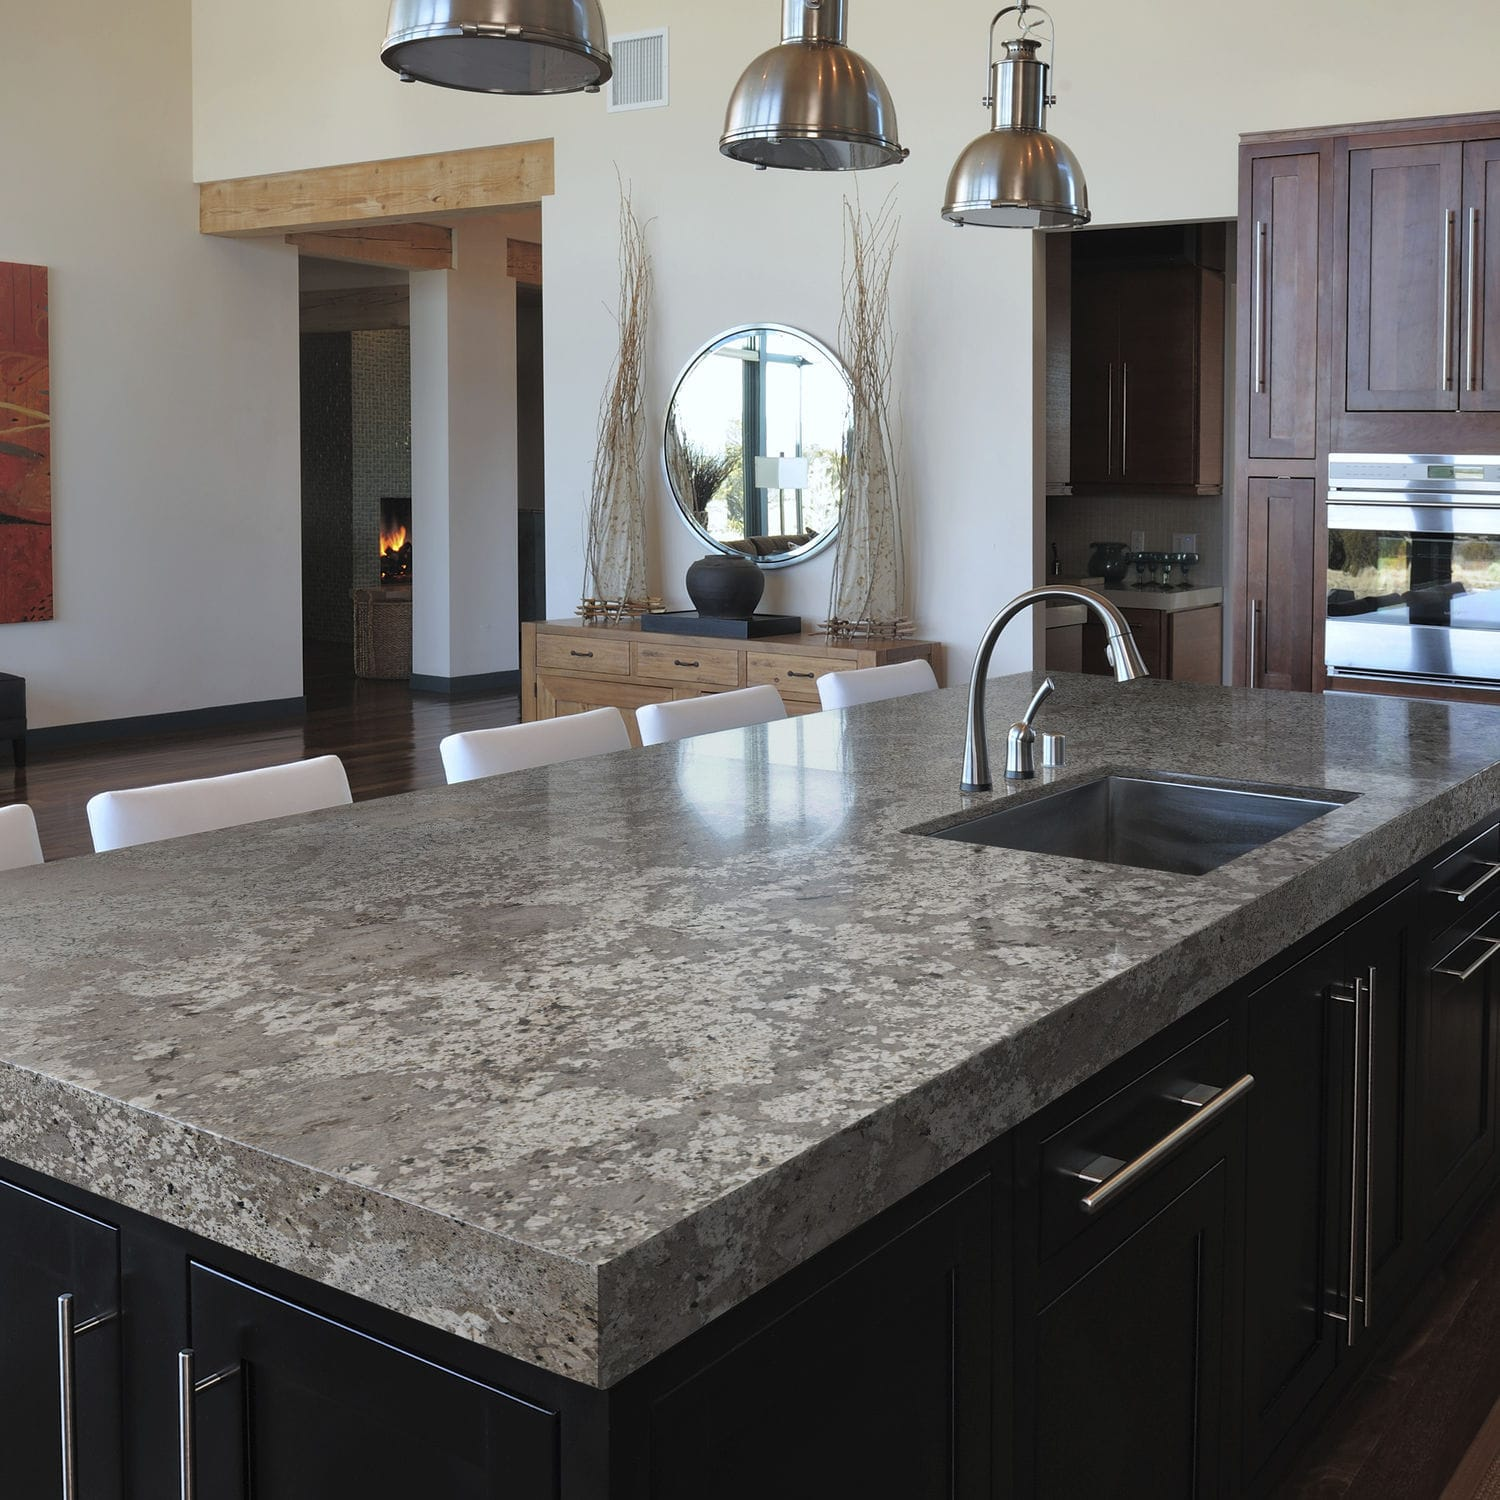 granite kitchens kitchen makeovers on a budget 花岗岩厨房台面 厨房 bianco antico cosentino